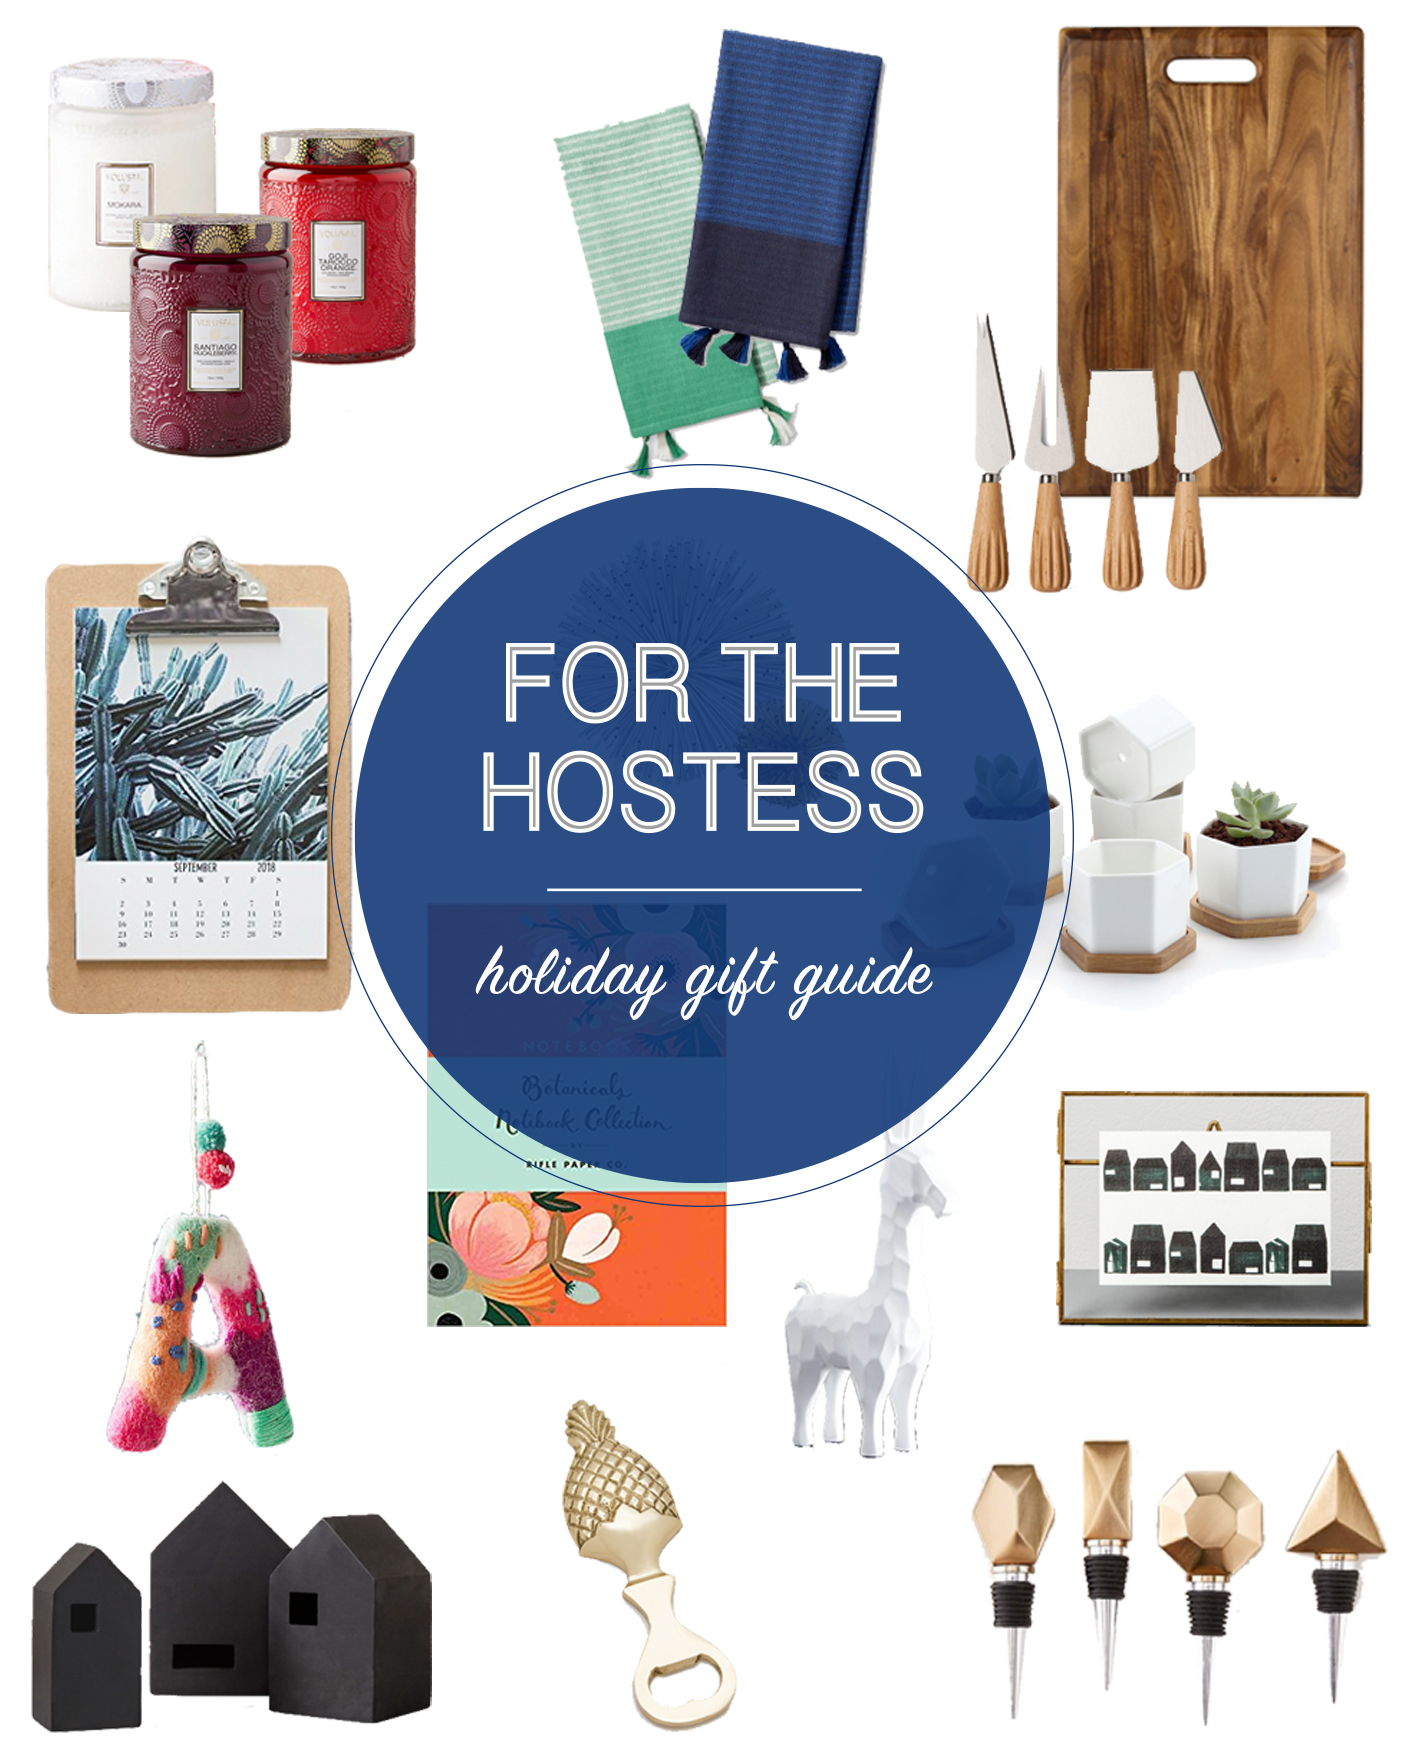 Don't show up empty-handed at your next holiday party! A pretty and thoughtful hostess gift is a great way of saying thank you for the shindig. Find these holiday gifts on the Mix & Match Design Company blog.